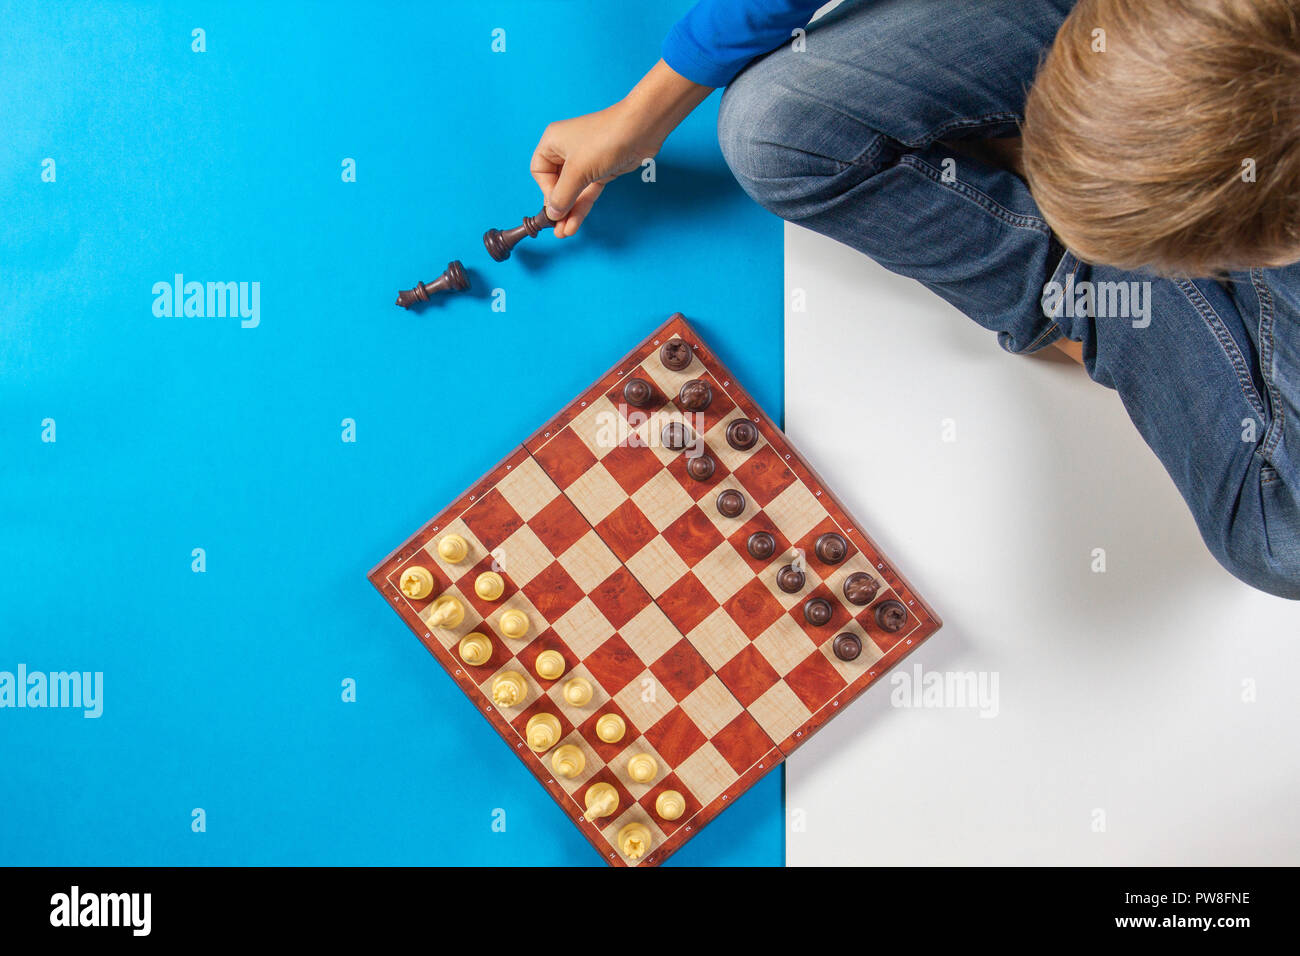 Kid sitting and learning to play chess game. Top view. Stock Photo